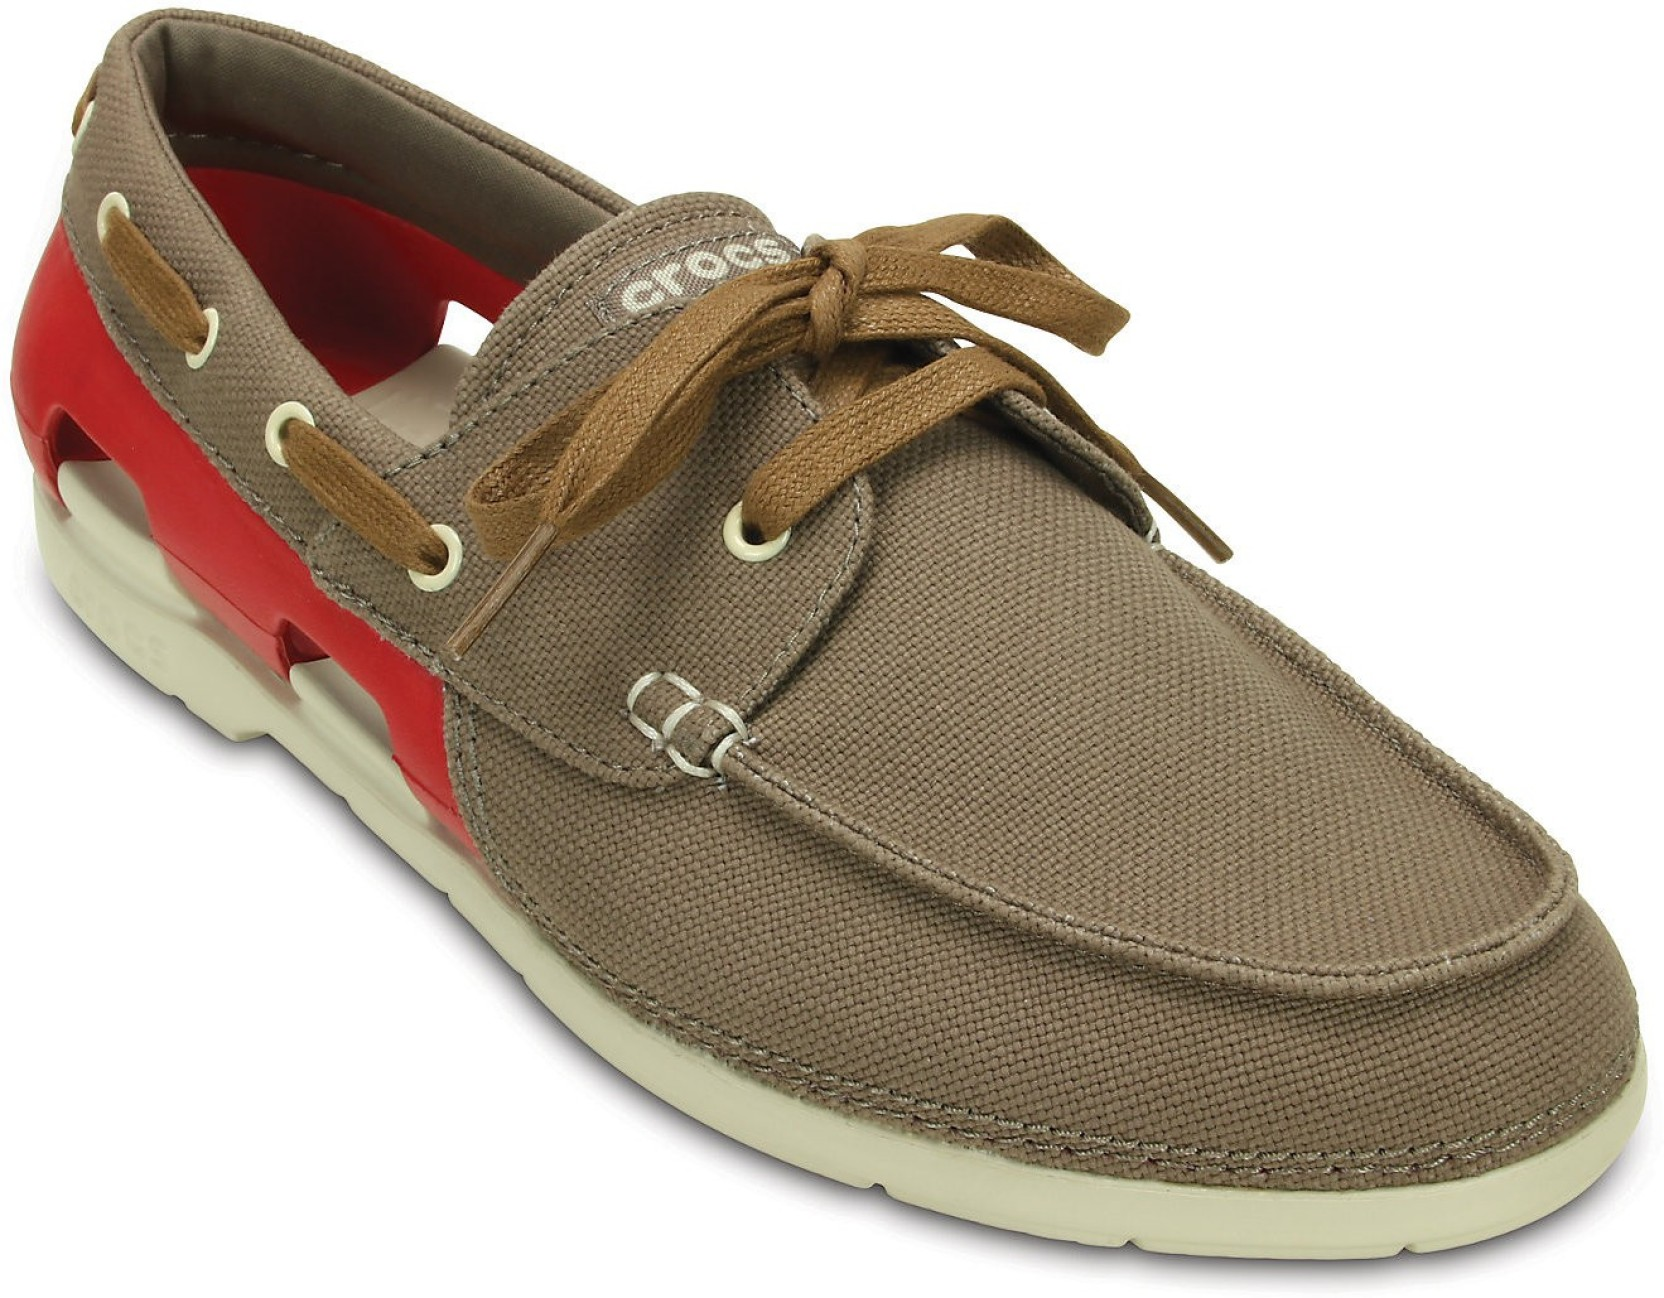 Cheap Boat Shoes Online India